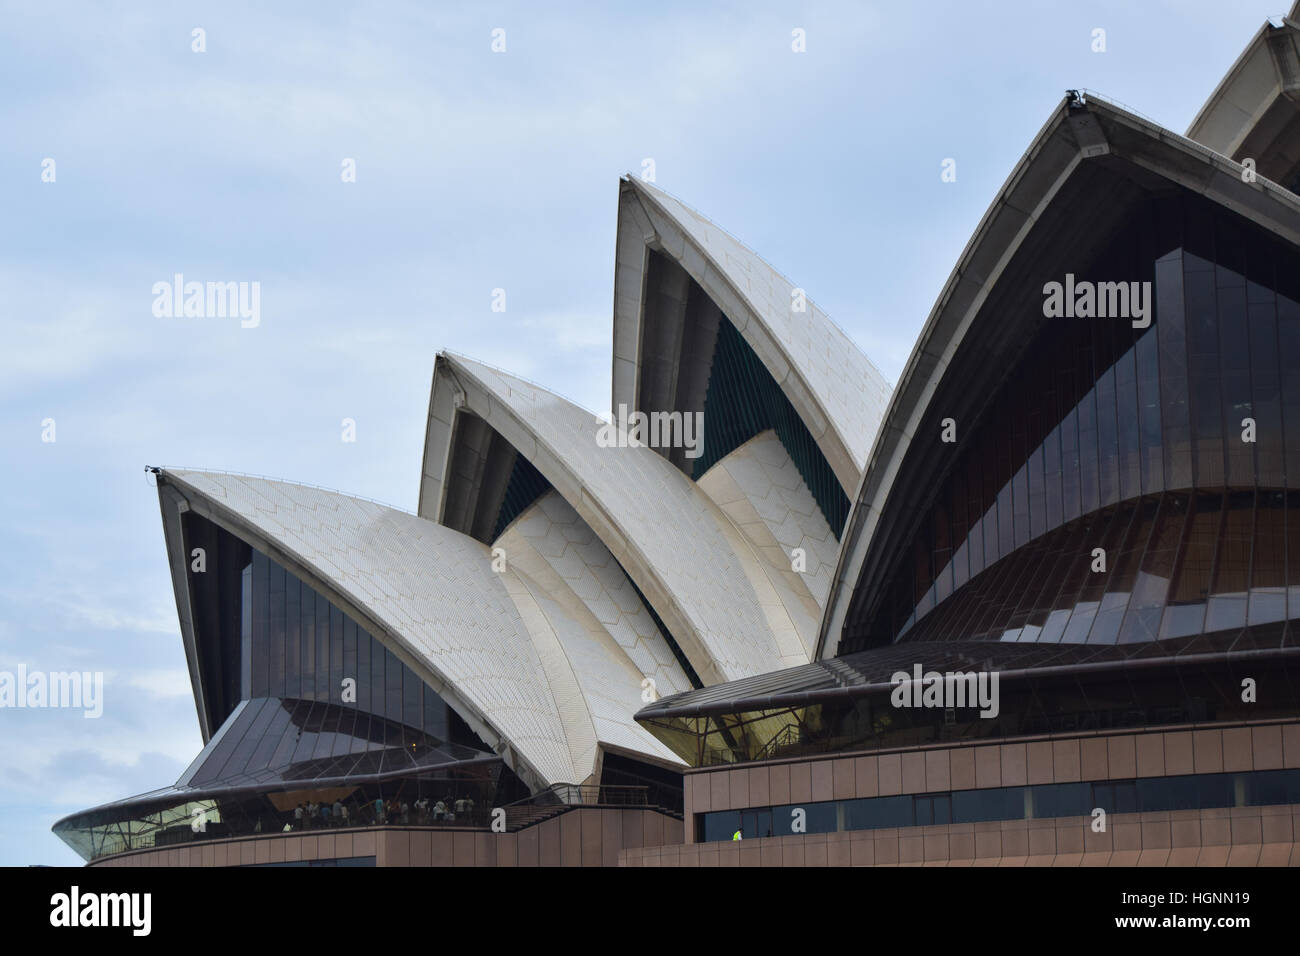 The Sydney Opera House SOH on Bennelong Point next to the Sydney Harbor Bridge and Harbor in Australia, New South - Stock Image